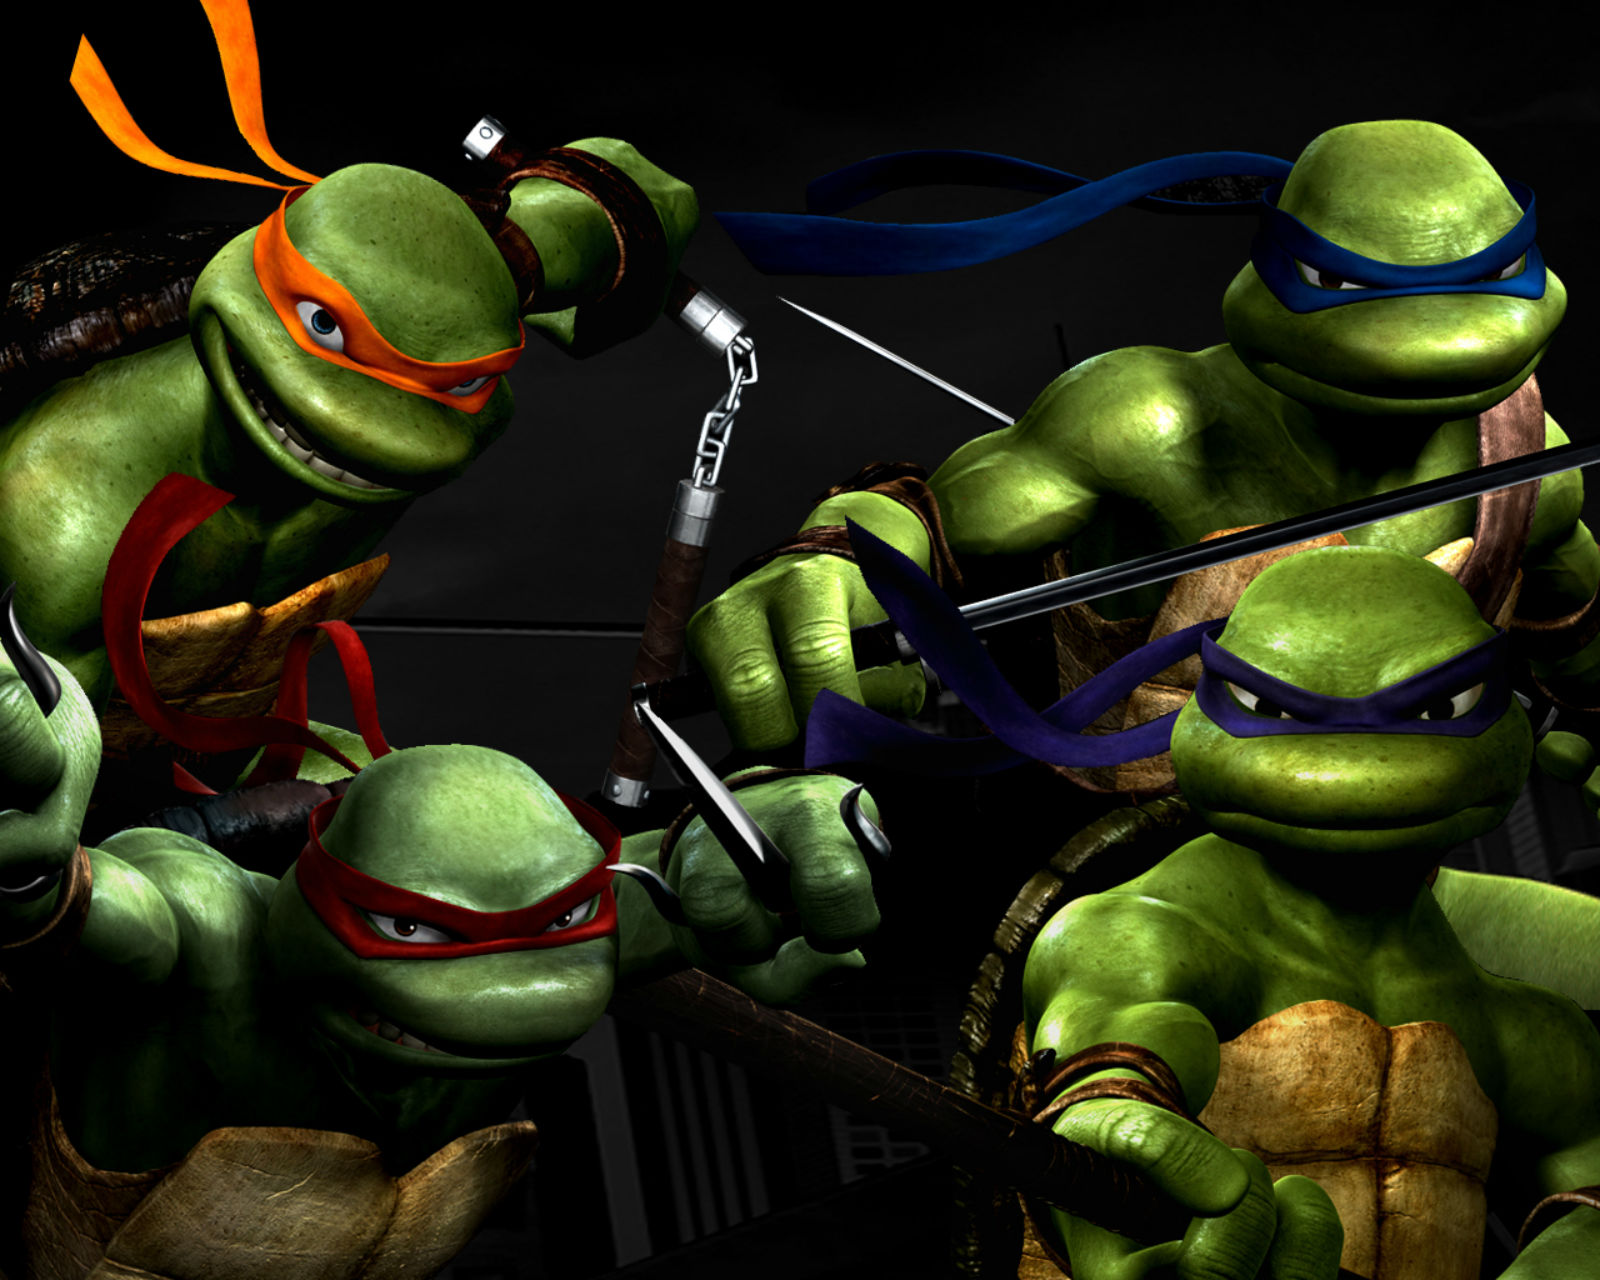 ninja turtles wallpapers download